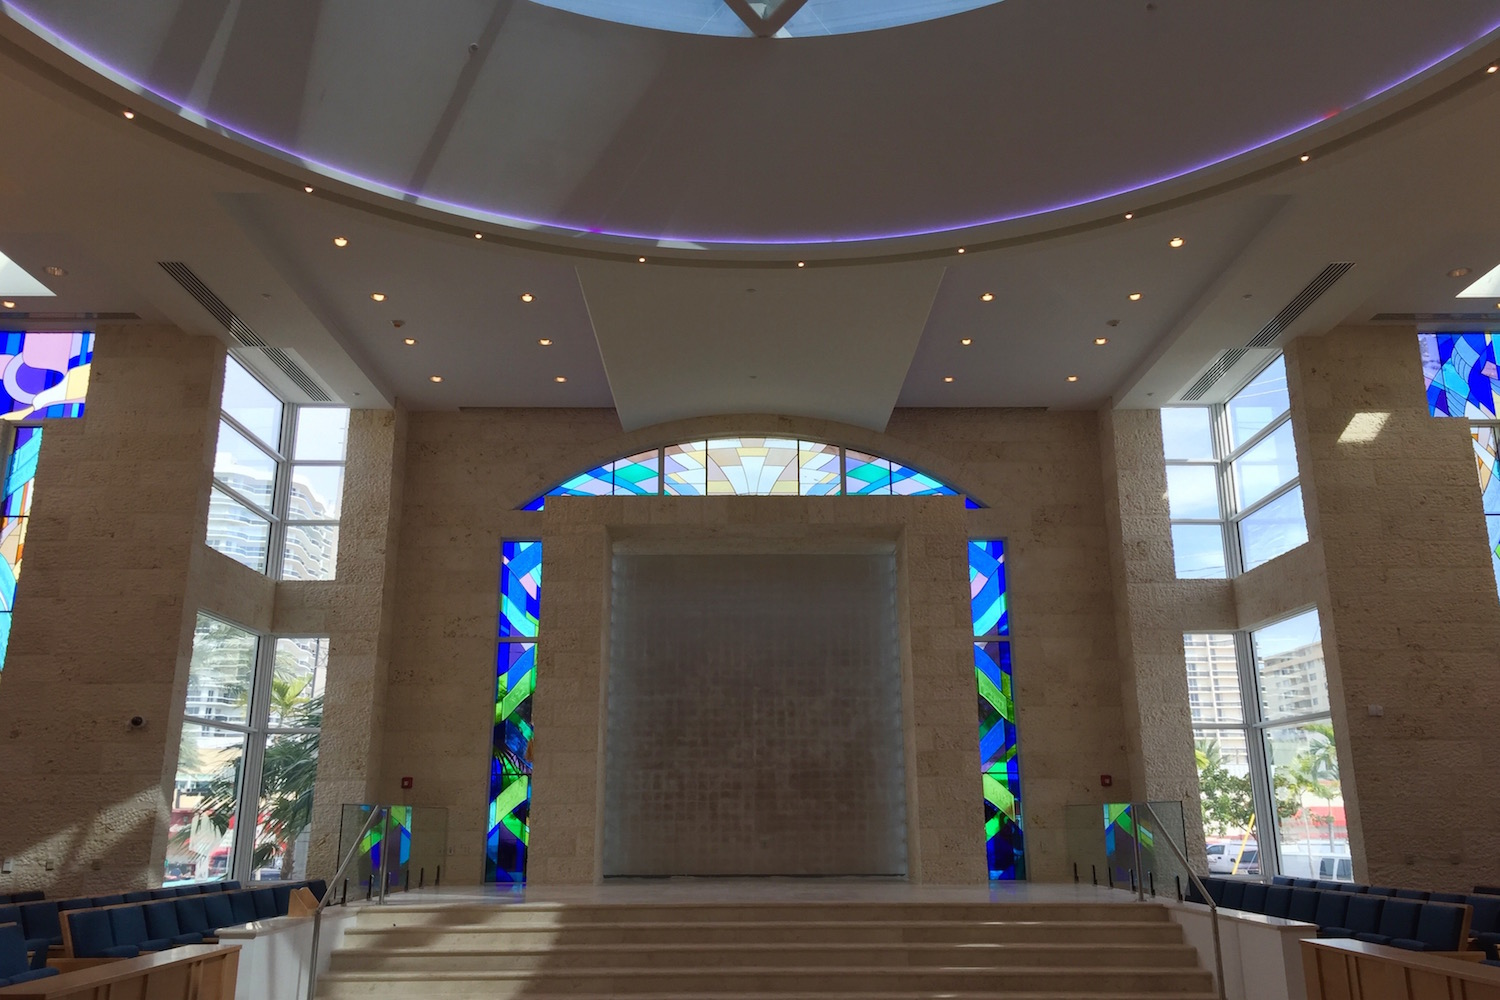 Young Israel Synagogue in Miami, FL with a brand-new look feautring feature porous Jerusalem Stone and acoustics designed by WSDG